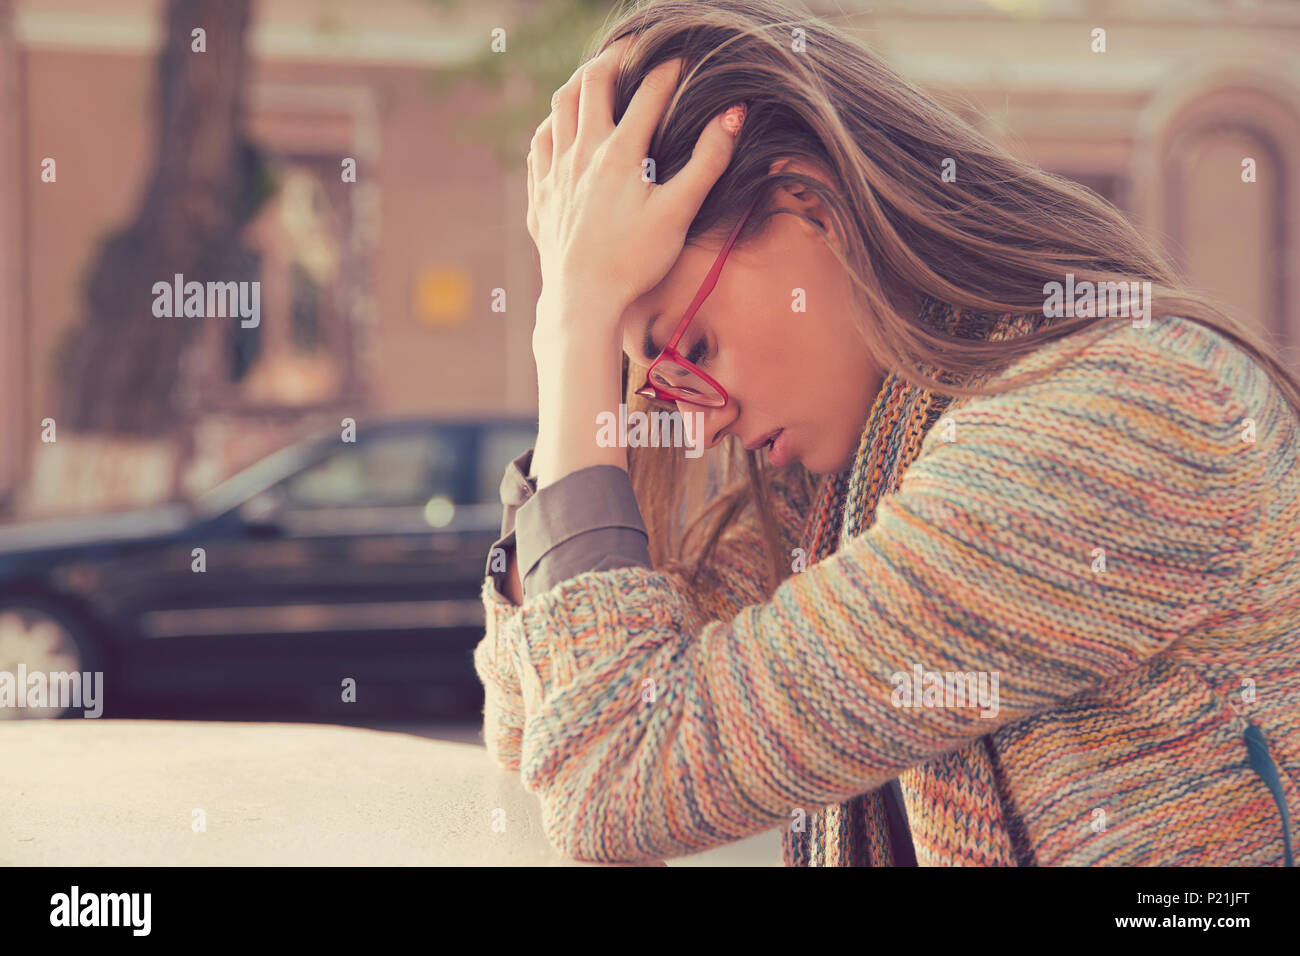 Side profile stressed sad young woman sitting outdoors with broken down car on background. City urban life style stress - Stock Image